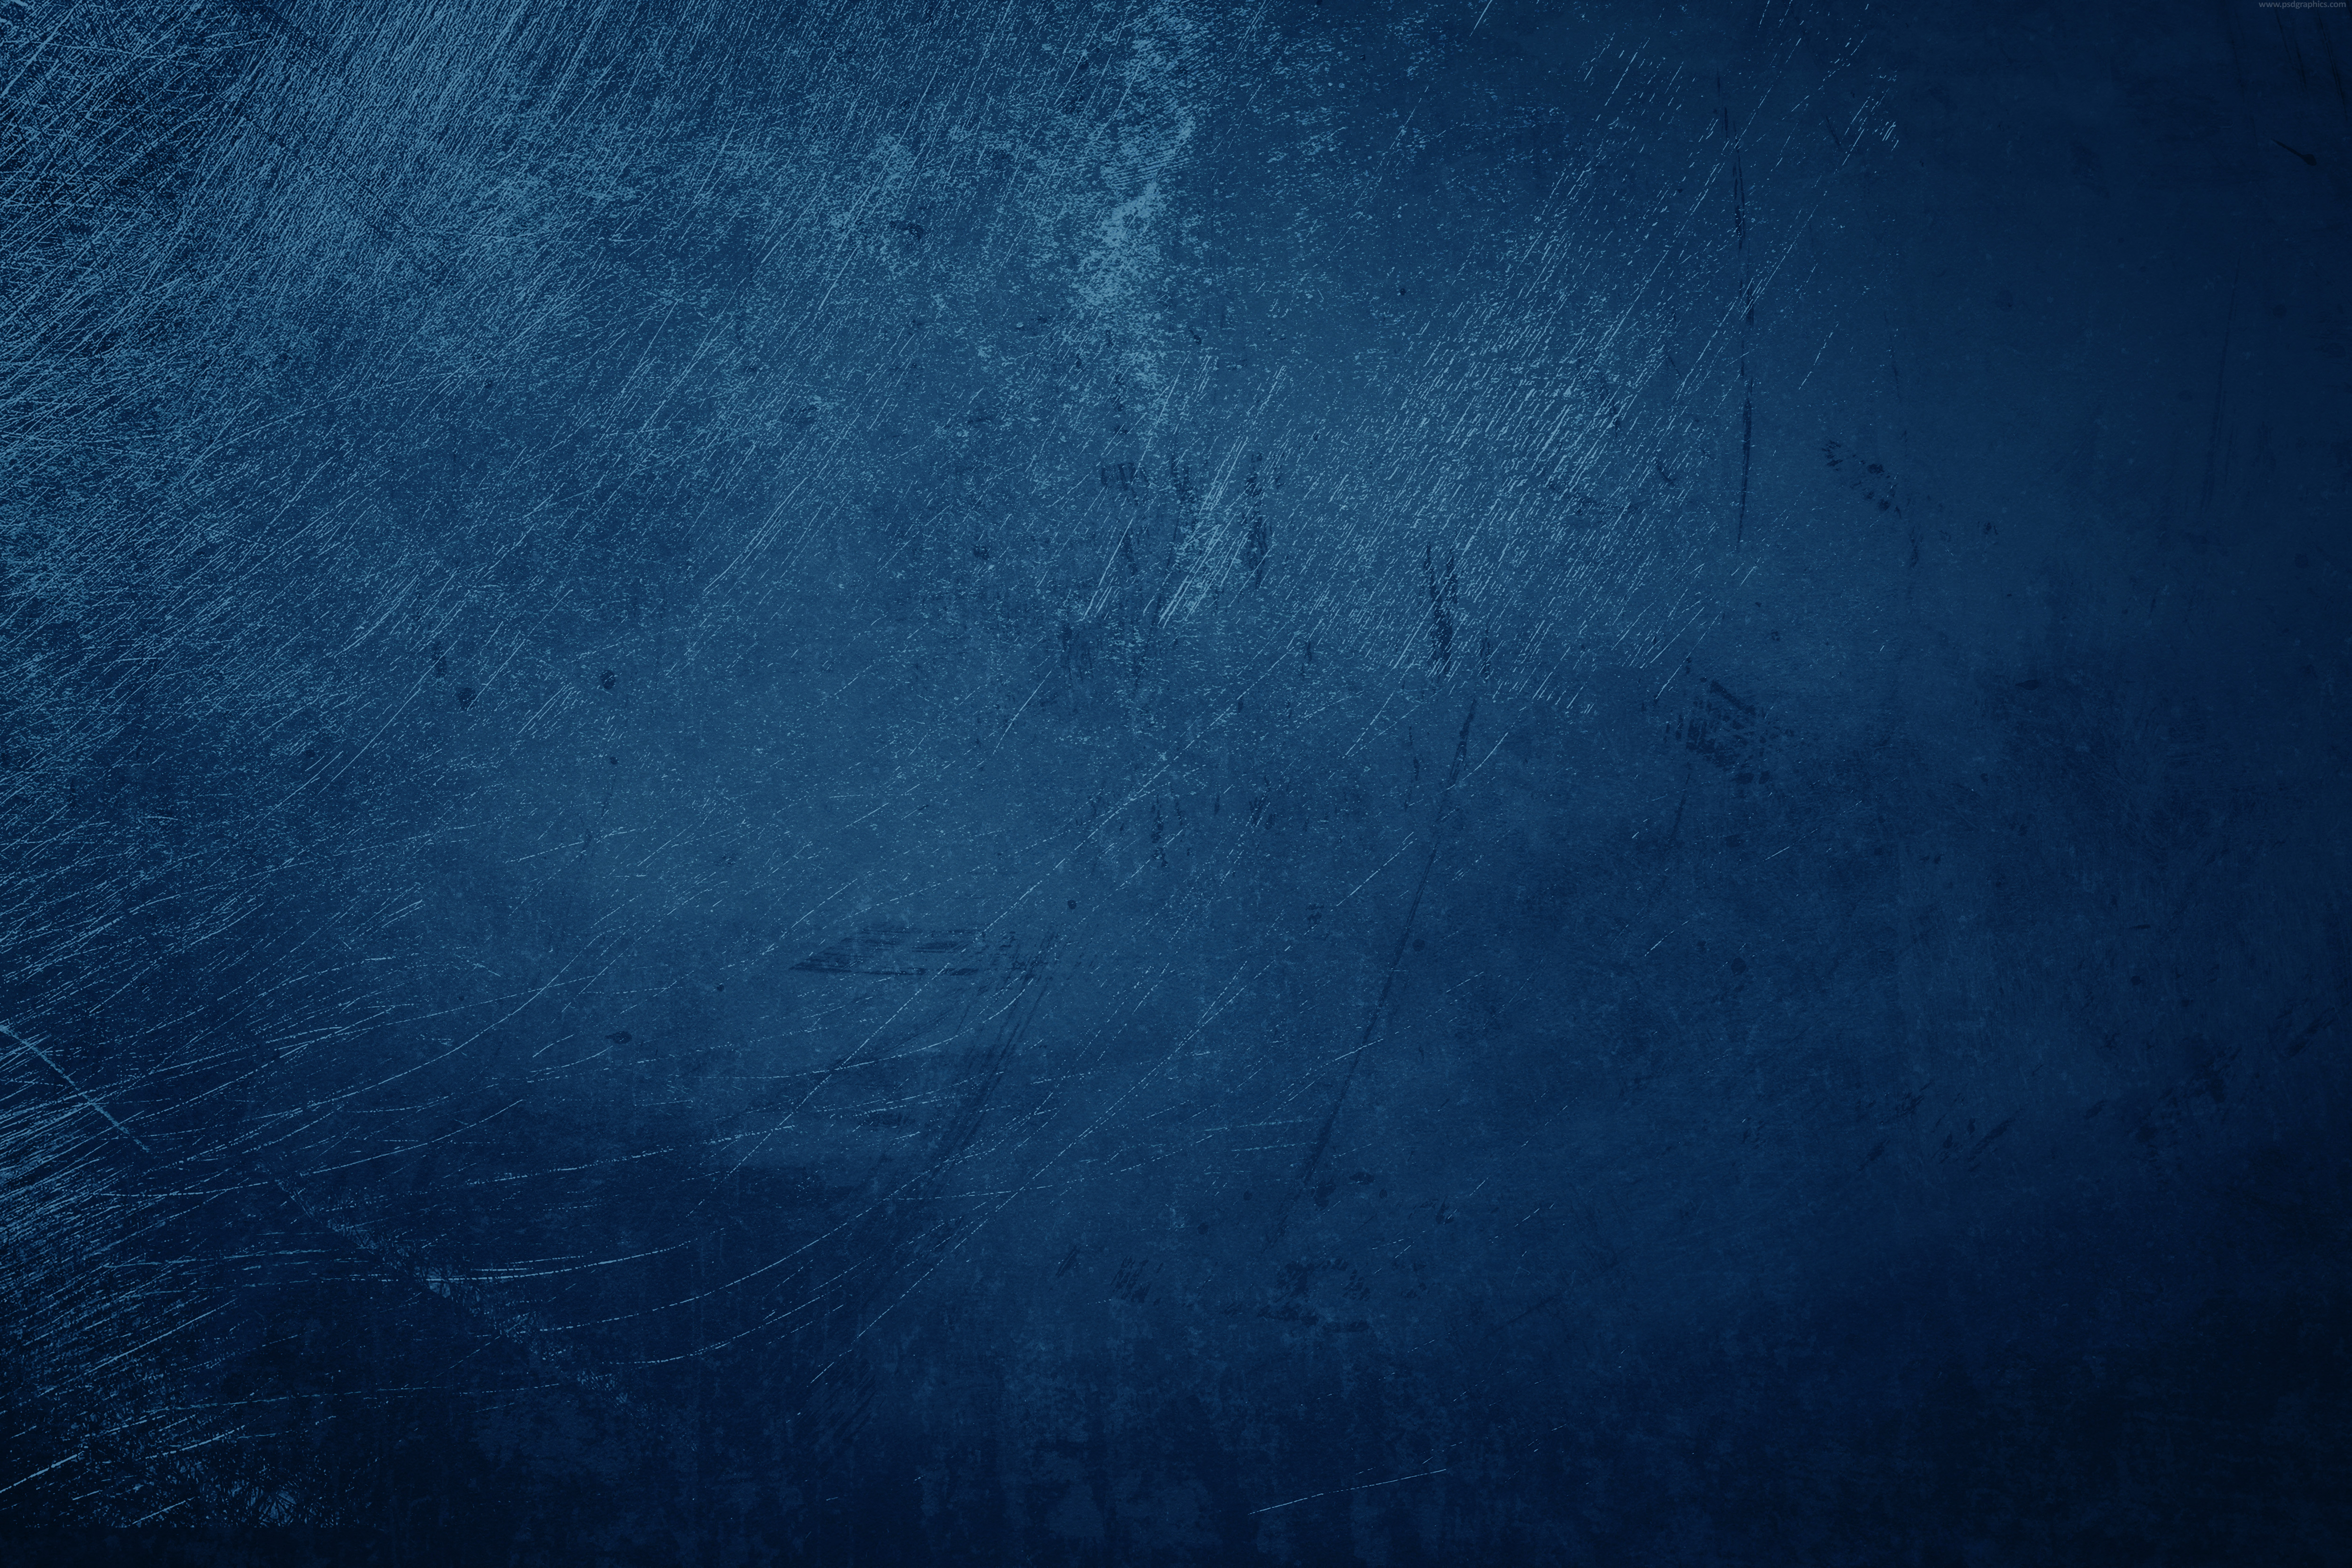 Blue Grunge Background: Blue Grunge Texture